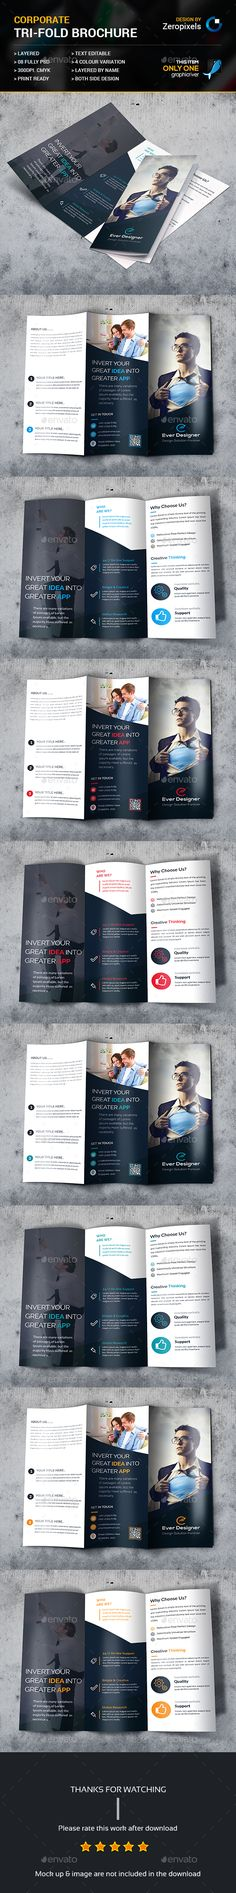 Trifold Brochure Template PSD. Download here: http://graphicriver.net/item/trifold-brochure/15352889?ref=ksioks